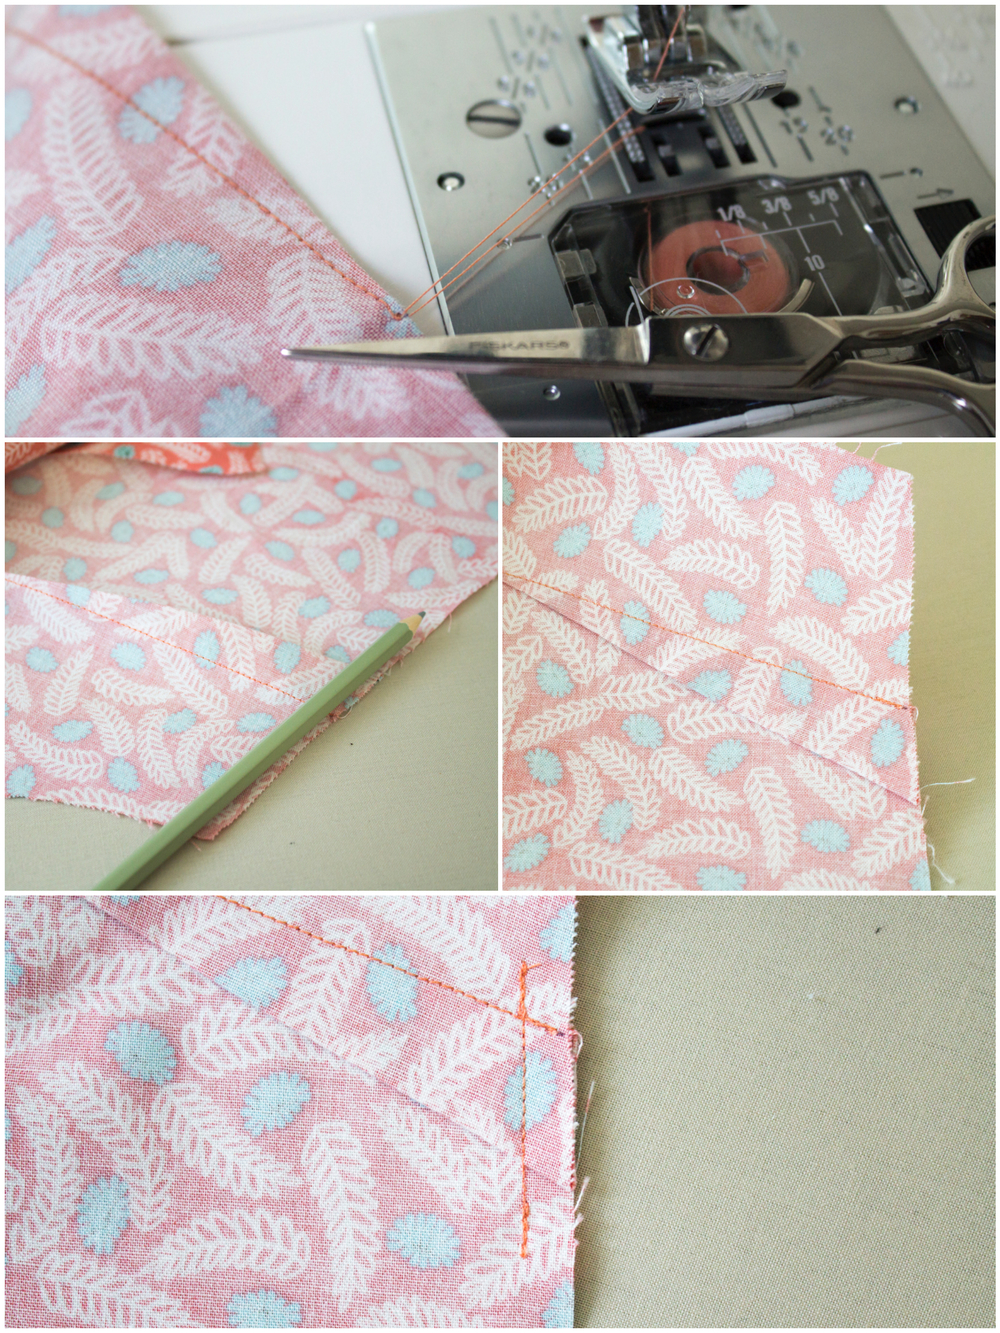 inkbyjeng_diy_sewing_racerback_tank_top_sewing_darts.jpg